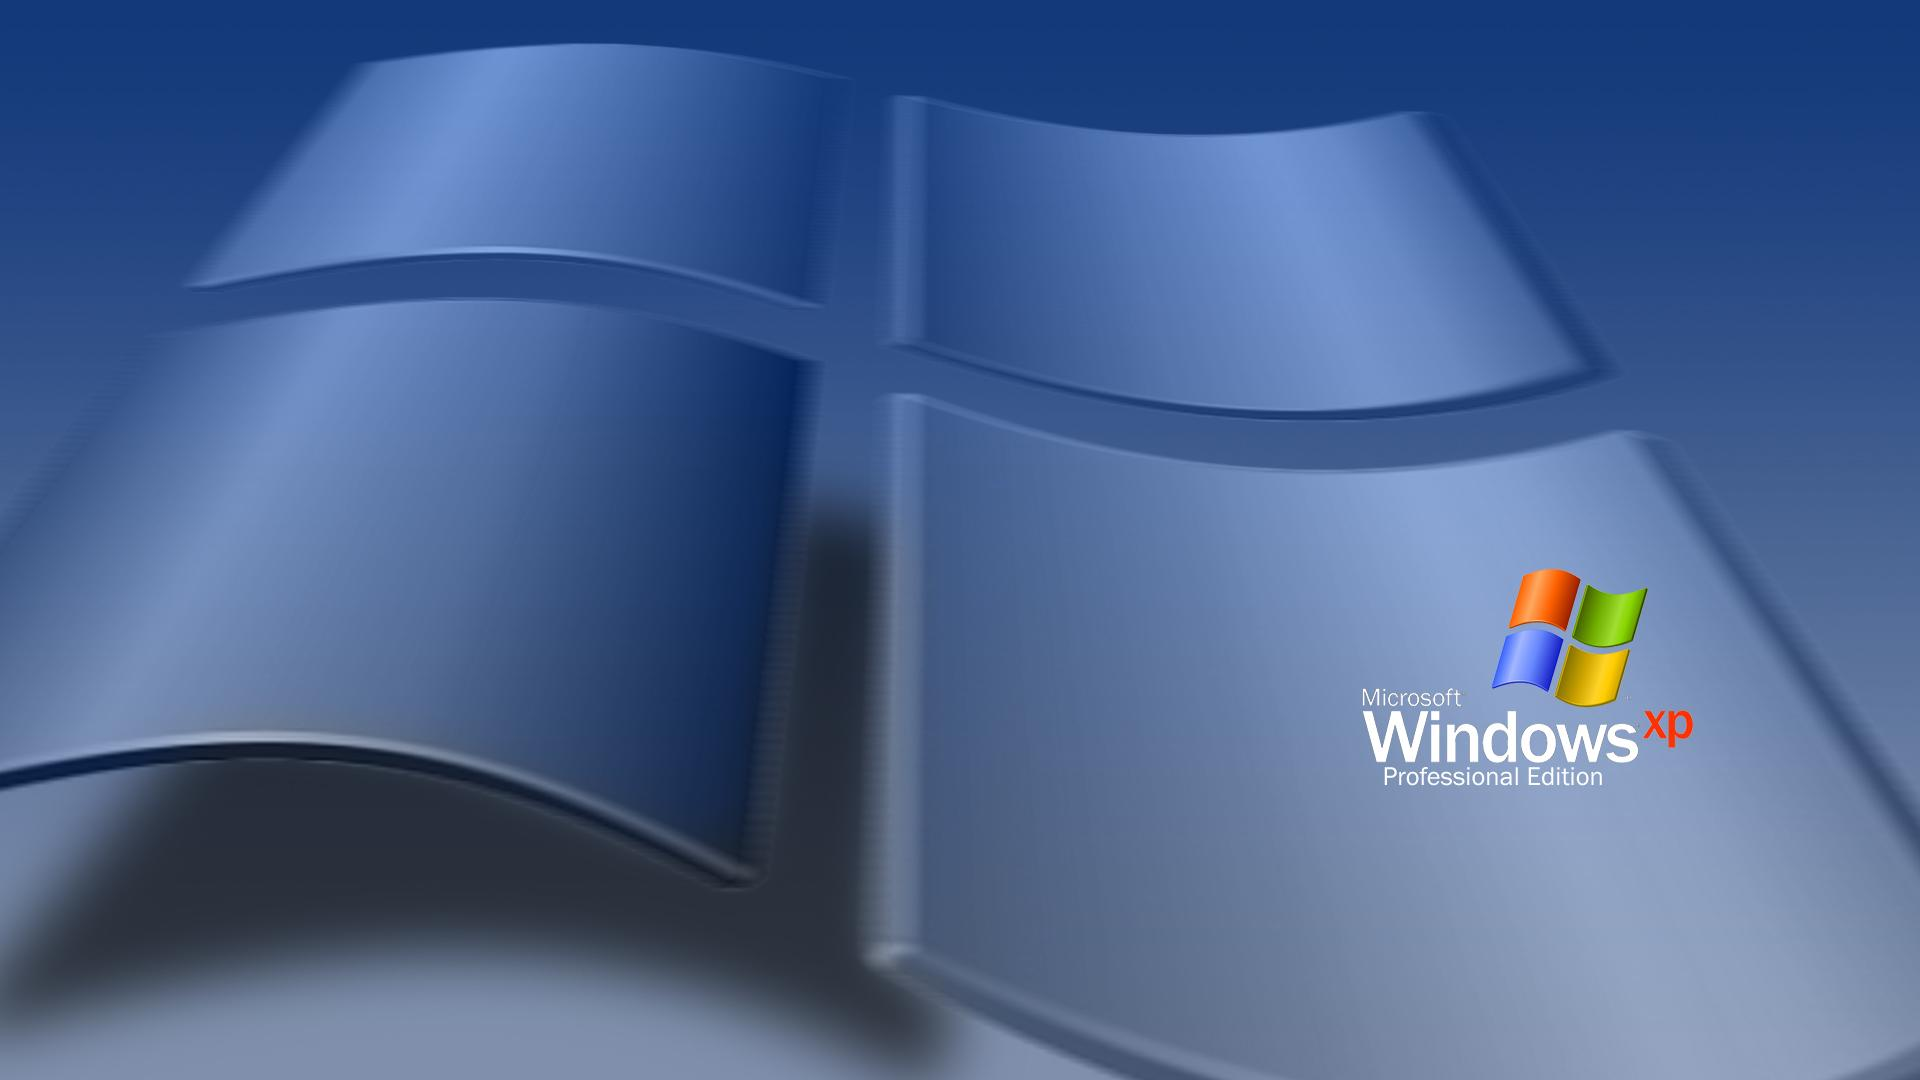 windows xp professional wallpapers windows xp wal